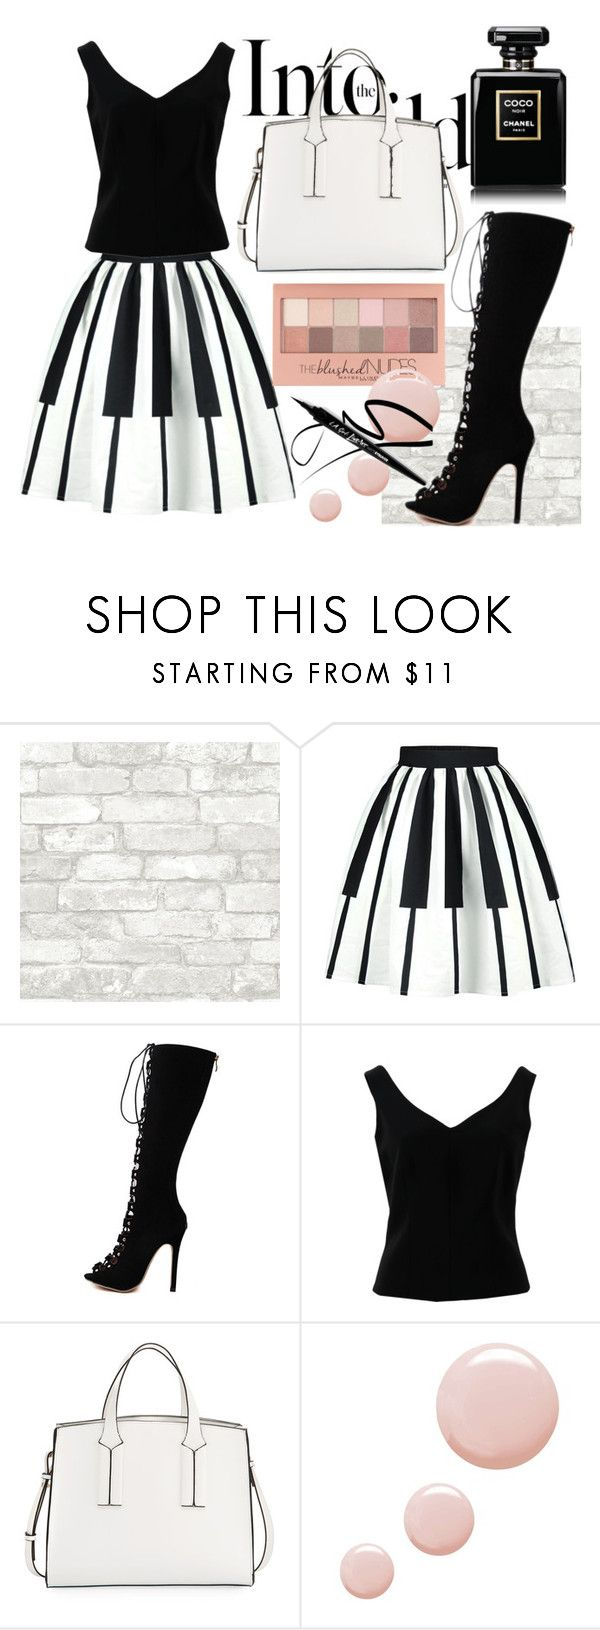 """""""Bez naslova #1"""" by nensi2 ❤ liked on Polyvore featuring Anja, WithChic, ADAM, French Connection, Maybelline and Topshop"""